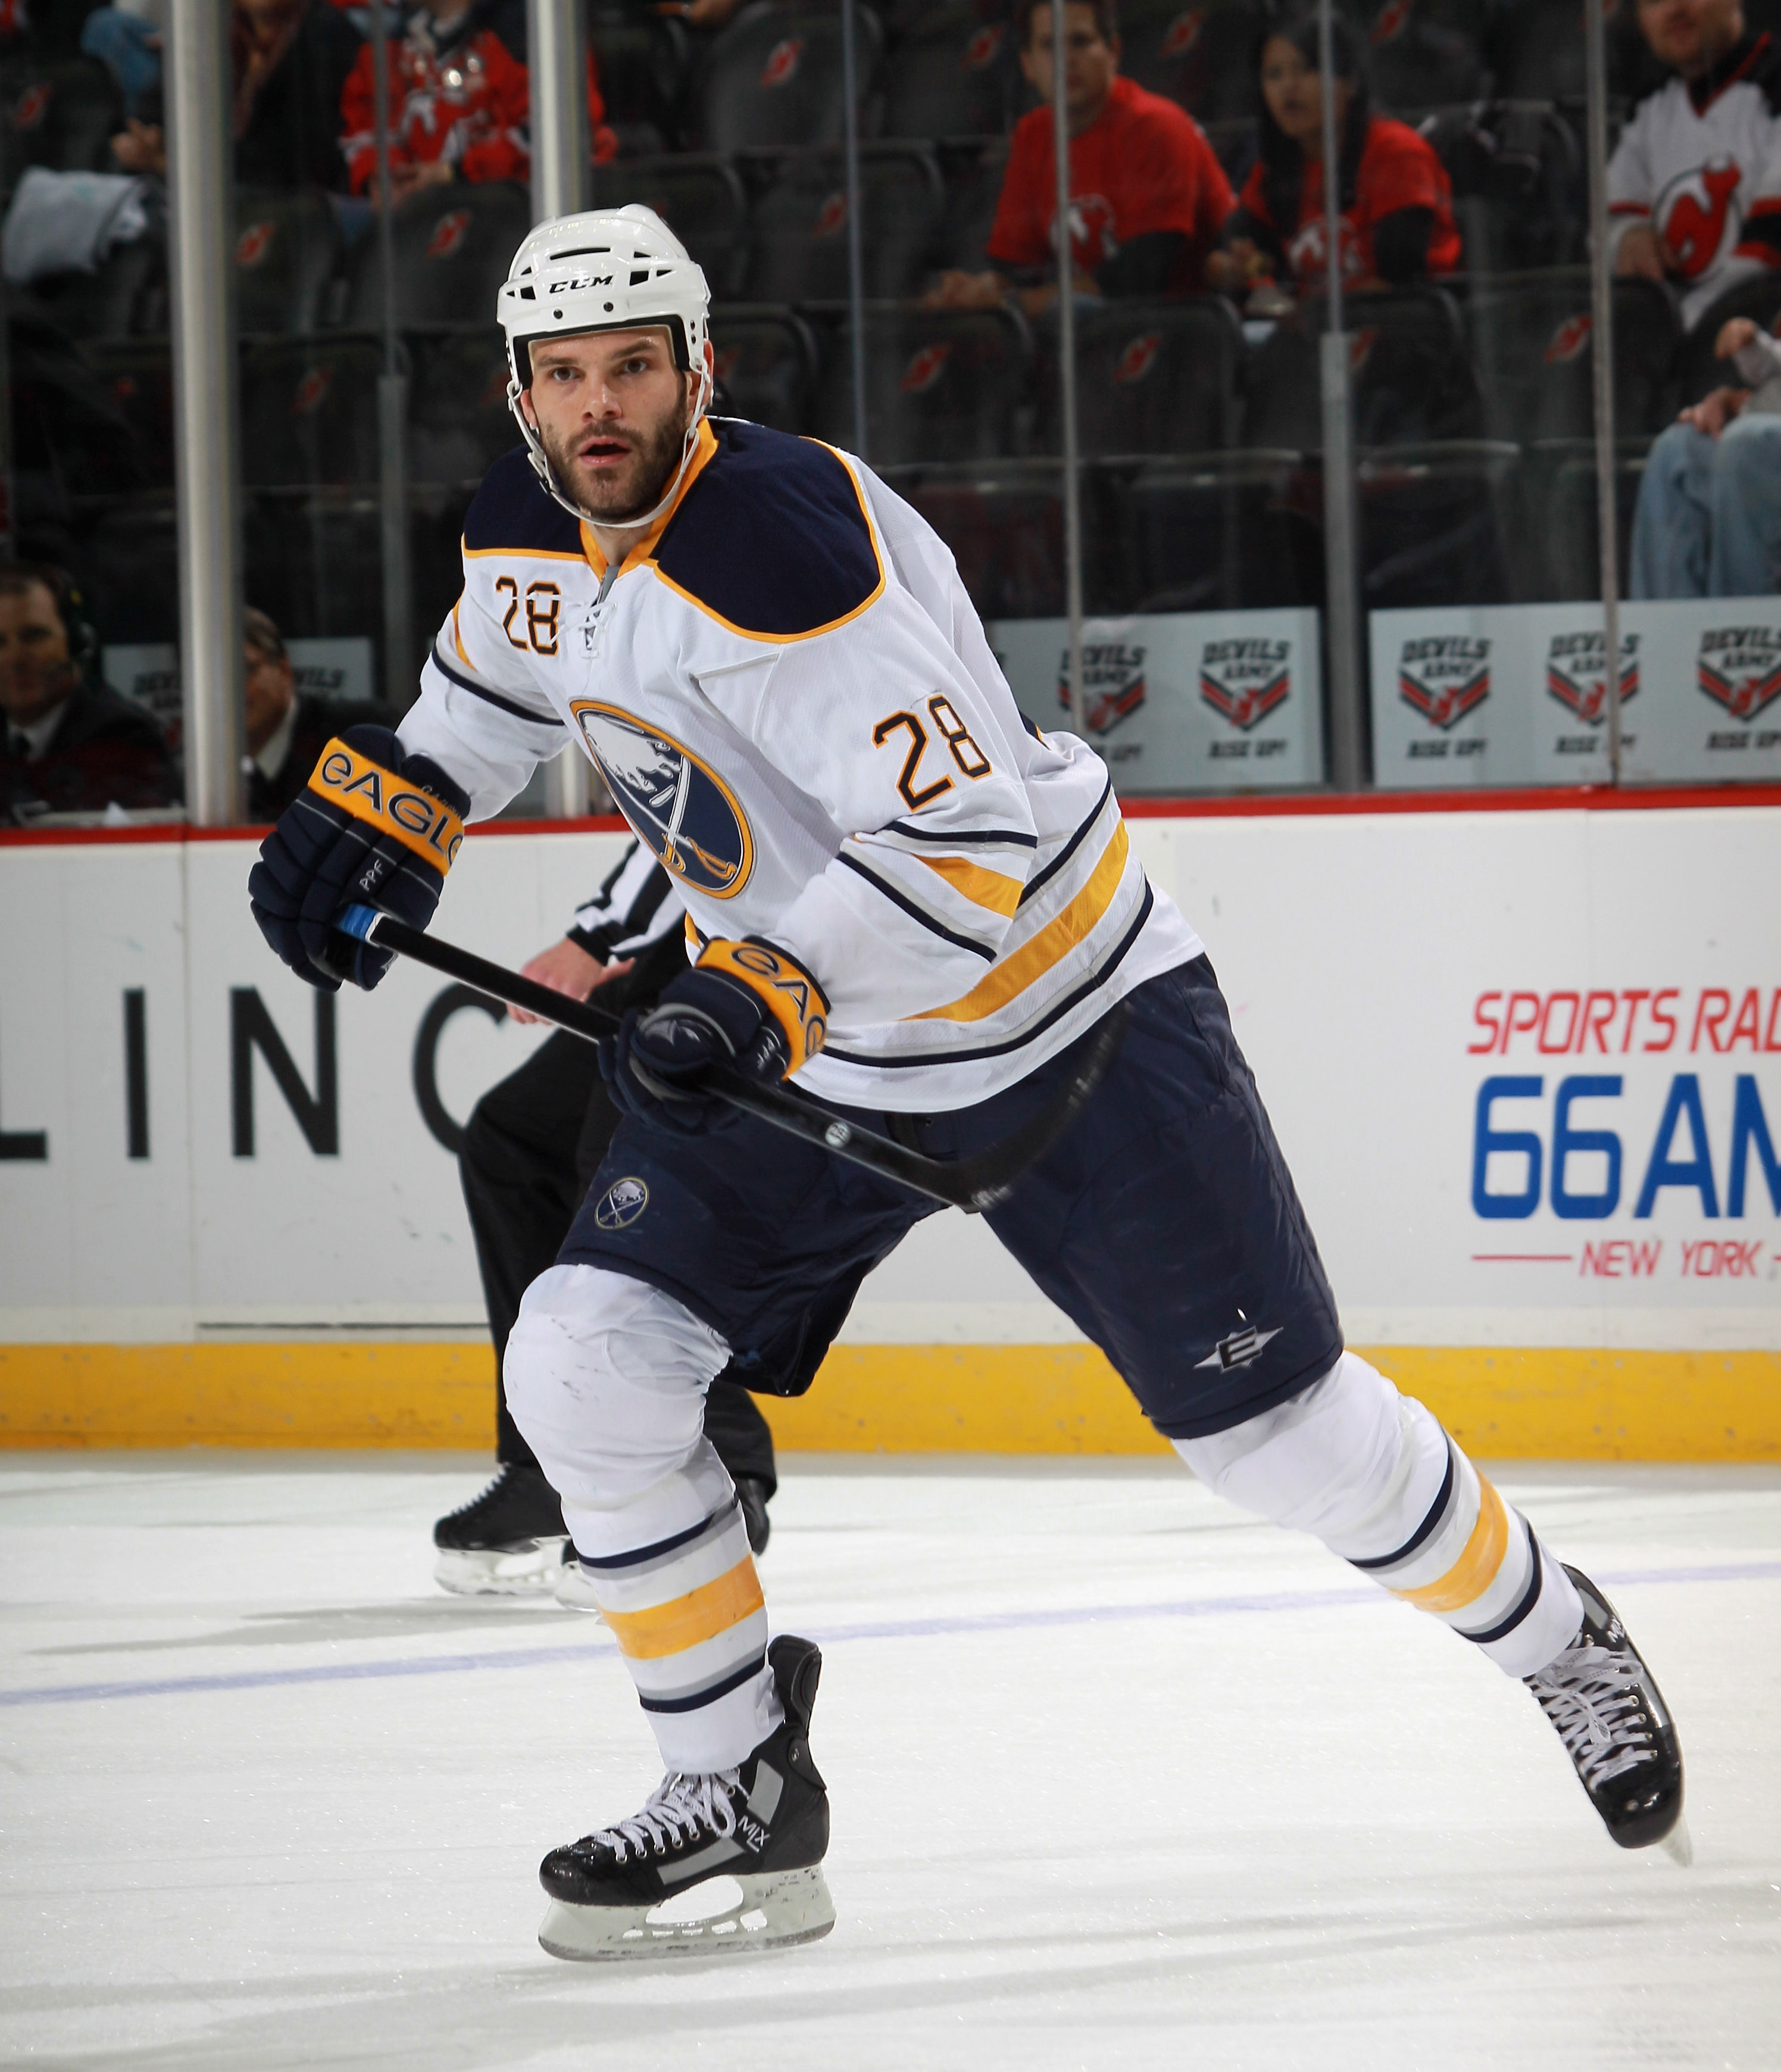 NEWARK, NJ - NOVEMBER 10: Paul Gaustad #28 of the Buffalo Sabres skates against the New Jersey Devils at the Prudential Center on November 10, 2010 in Newark, New Jersey. The Sabres defeated the DSevils 5-4 in the shootout.  (Photo by Bruce Bennett/Getty